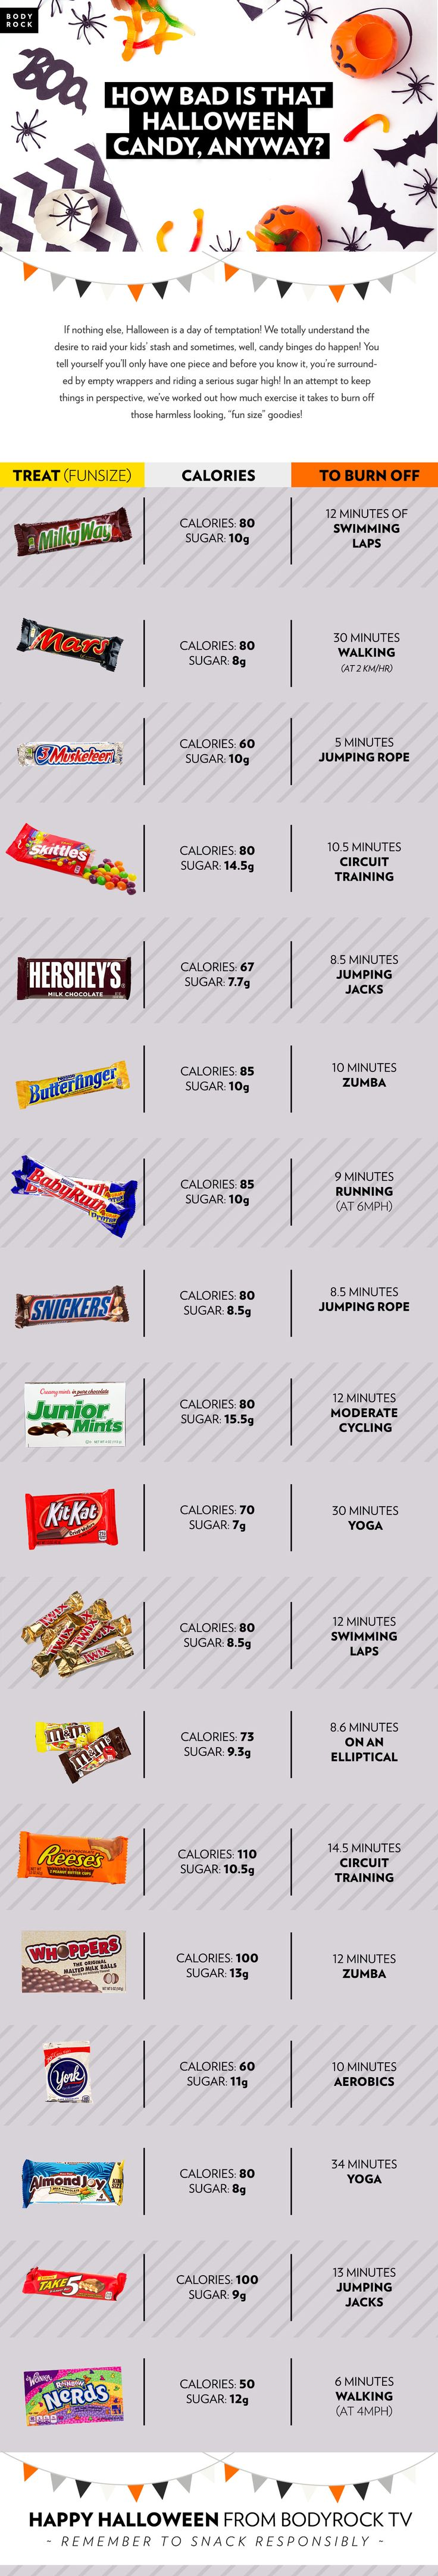 Calories can be the scariest part of halloween. Fun sized isn't a friendly as it sounds, each tiny candy containing up to 100 calories. Use this as a guide to responsible snacking for you and your kiddos this halloween. Listing sugar and calories, plus what you'll have to do to work it off, this will be your go to infographic this scary season. But don't forget to have some fun and treat yourself a little! Happy Halloween from BodyRock TV